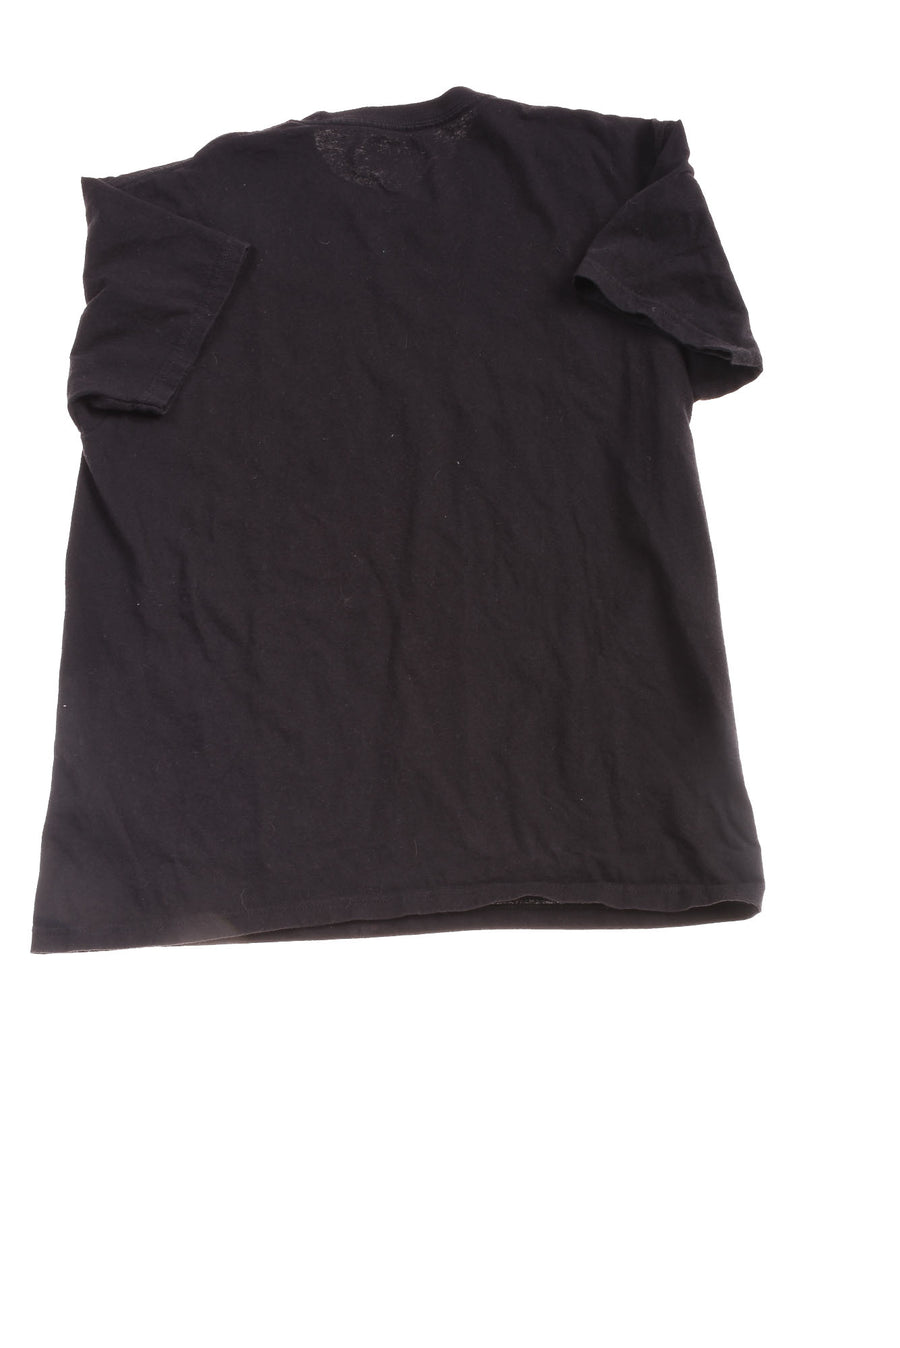 USED Champs Men's Shirt Small Black